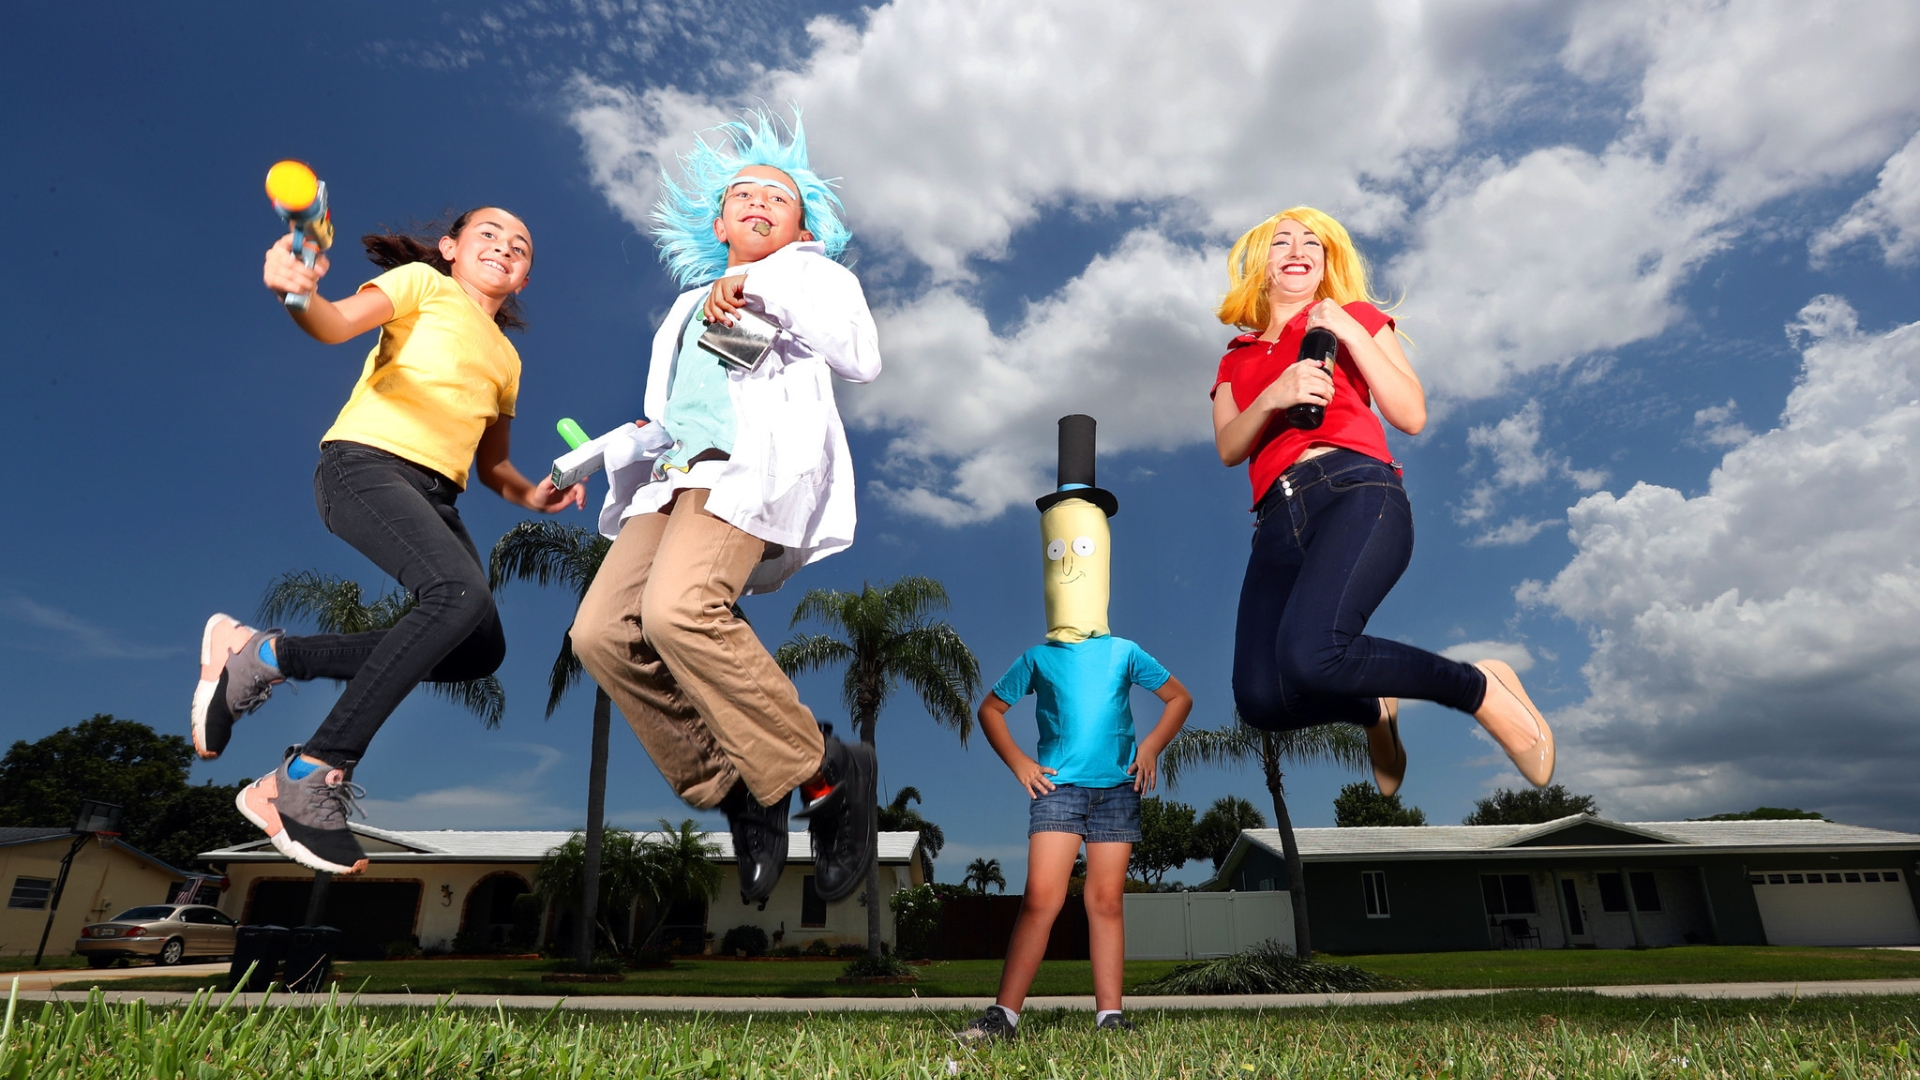 For these Florida Supercon fans, cosplay is a family affair